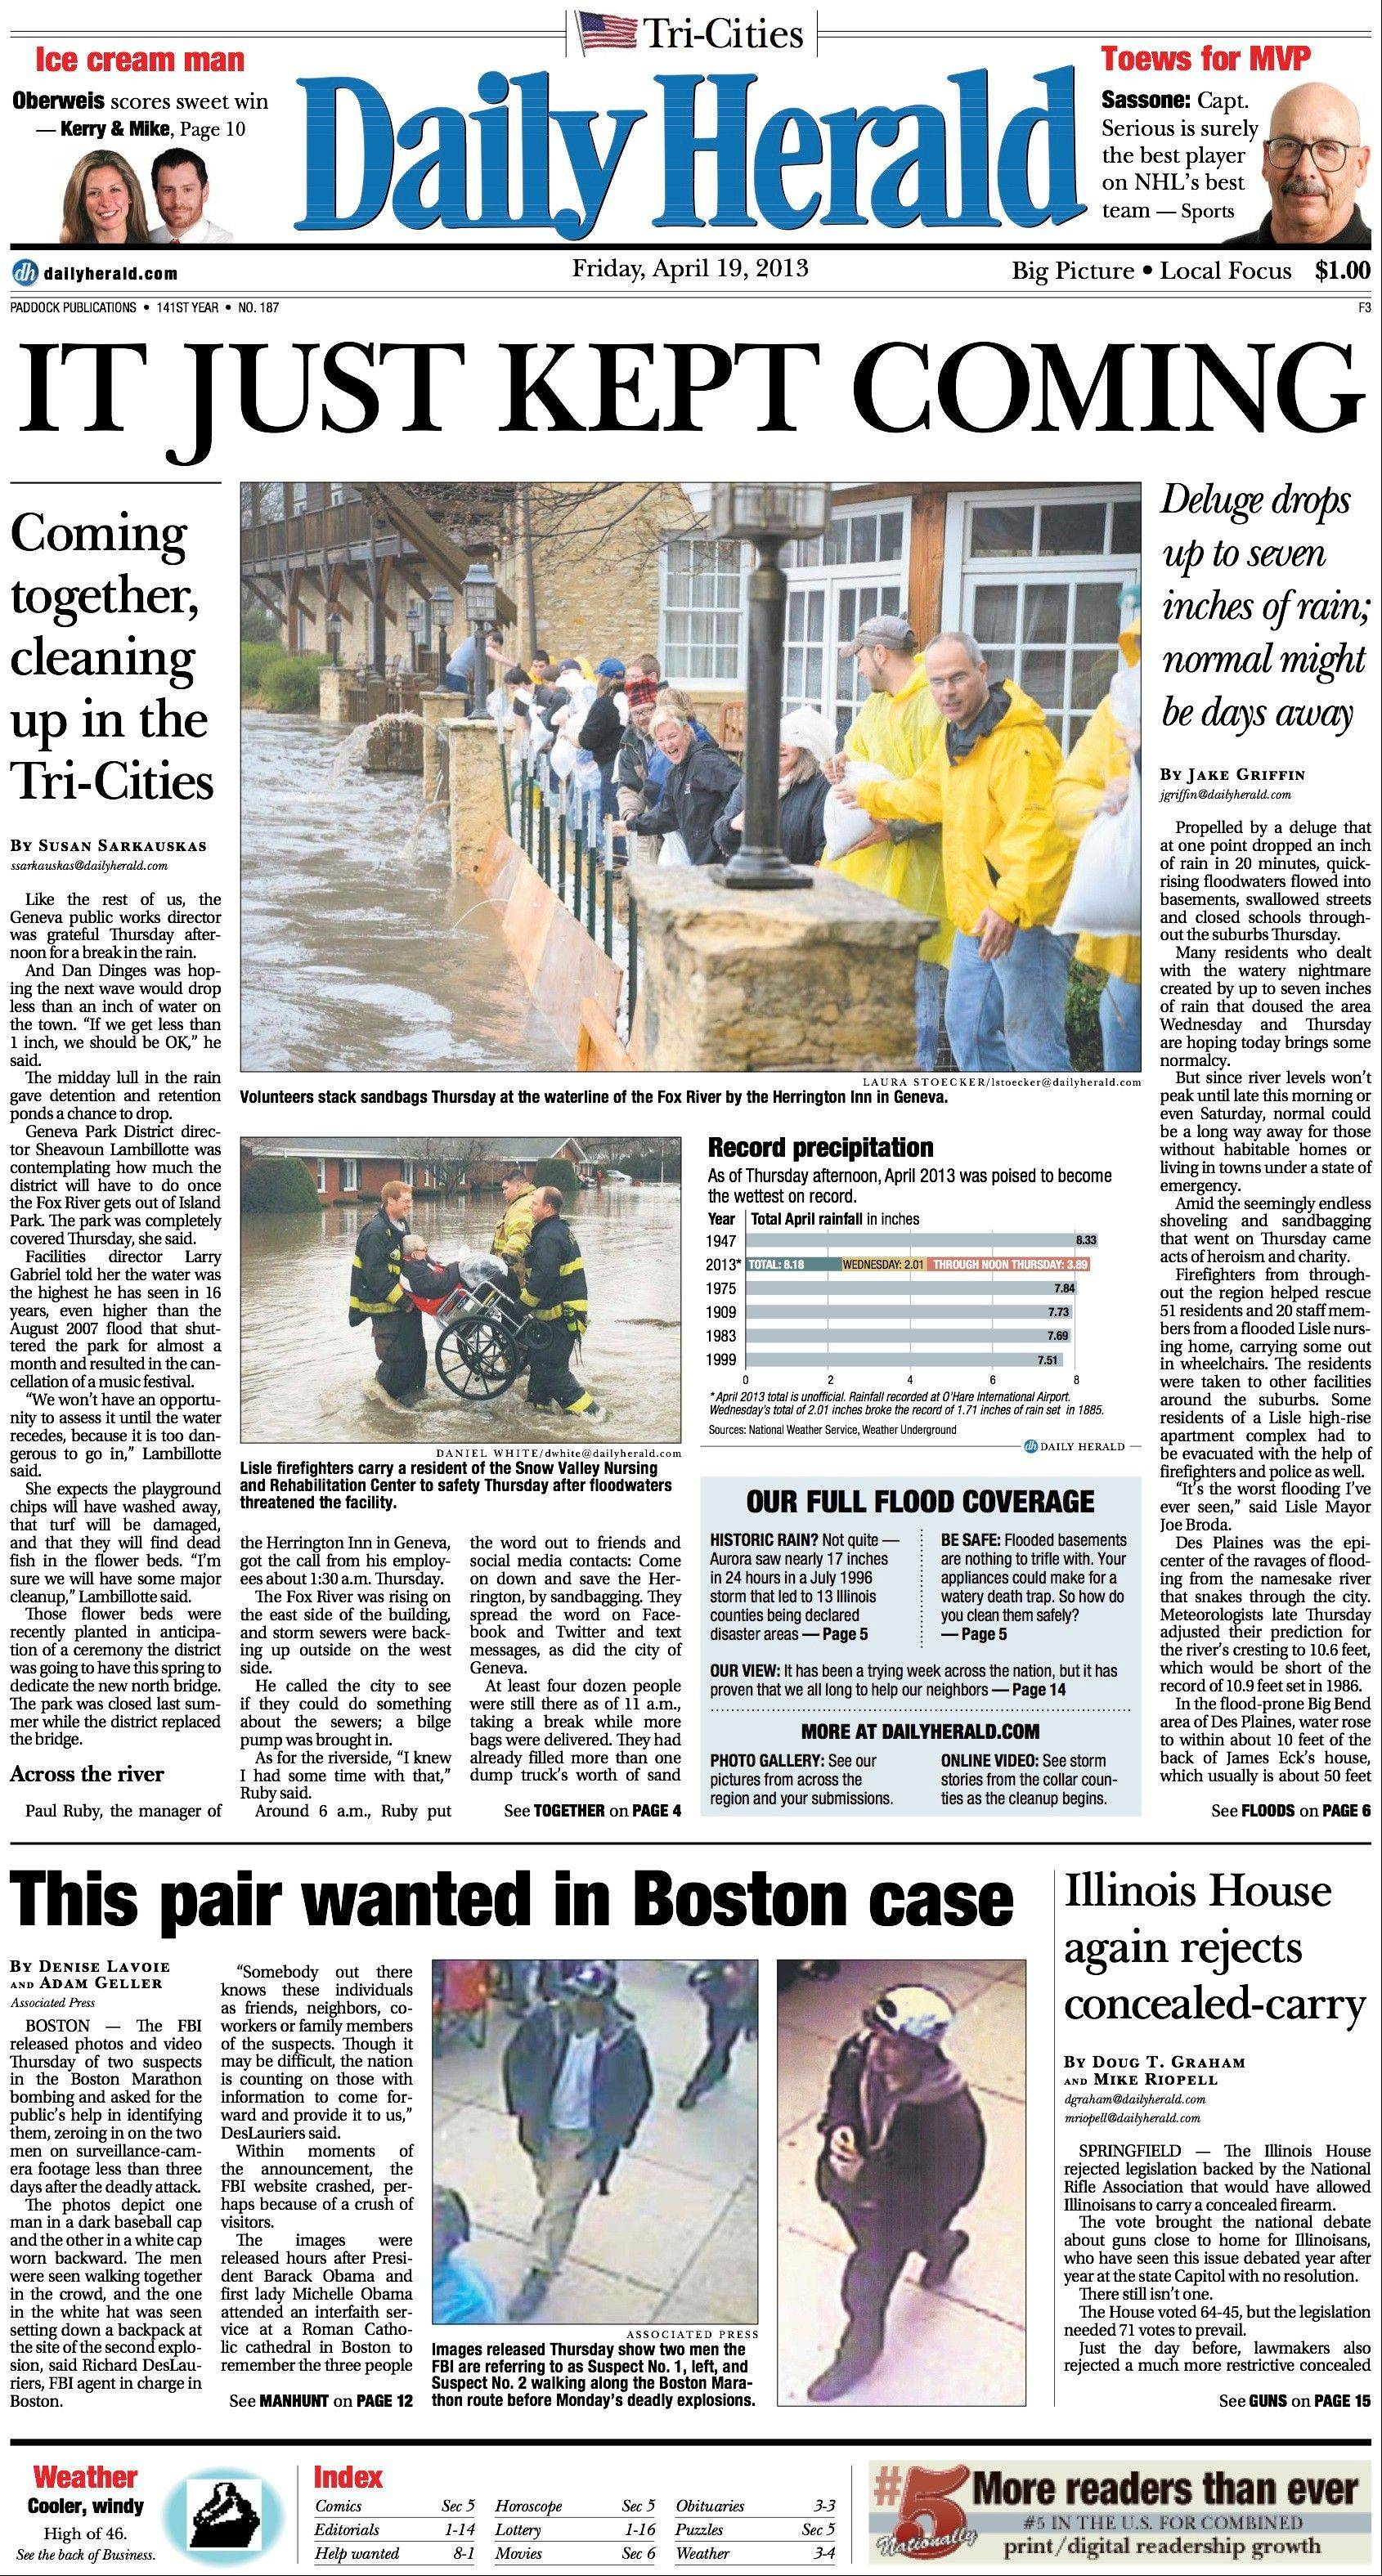 April 19: Tri-Cities residents faced the rising Fox River after spring April rains.